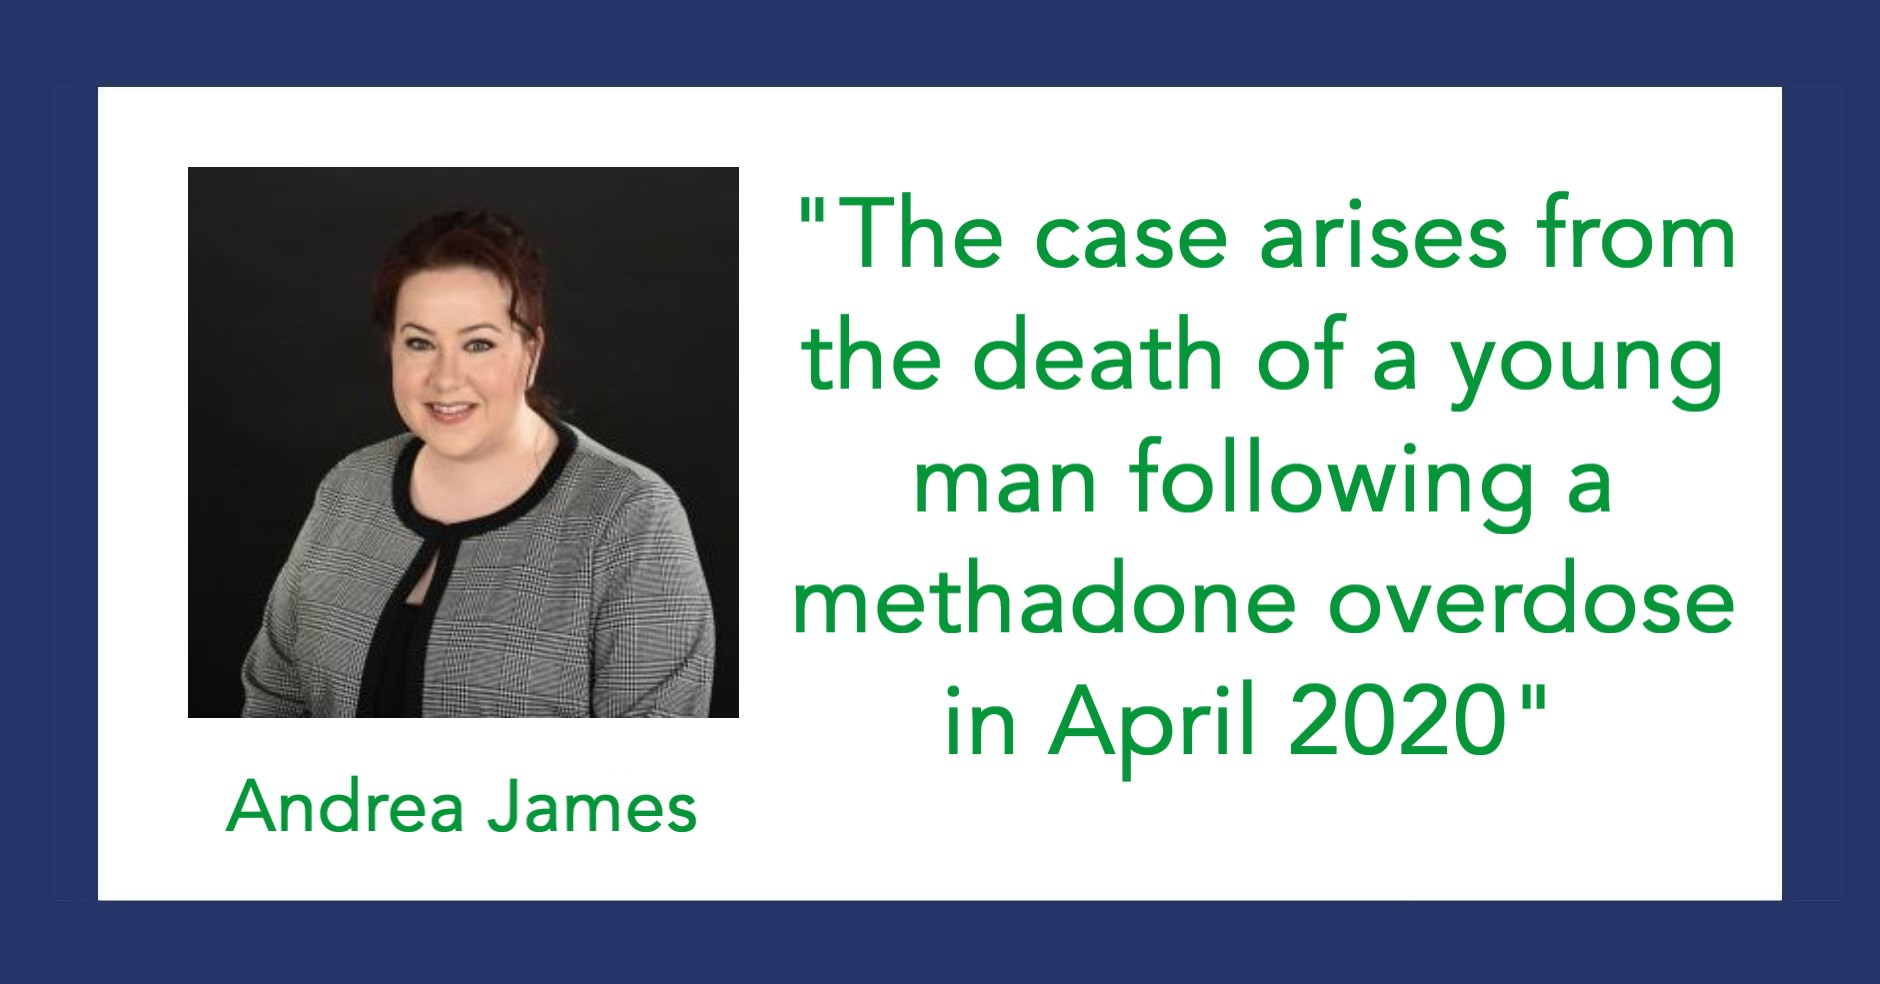 Andrea James comments on methadone toxicity case